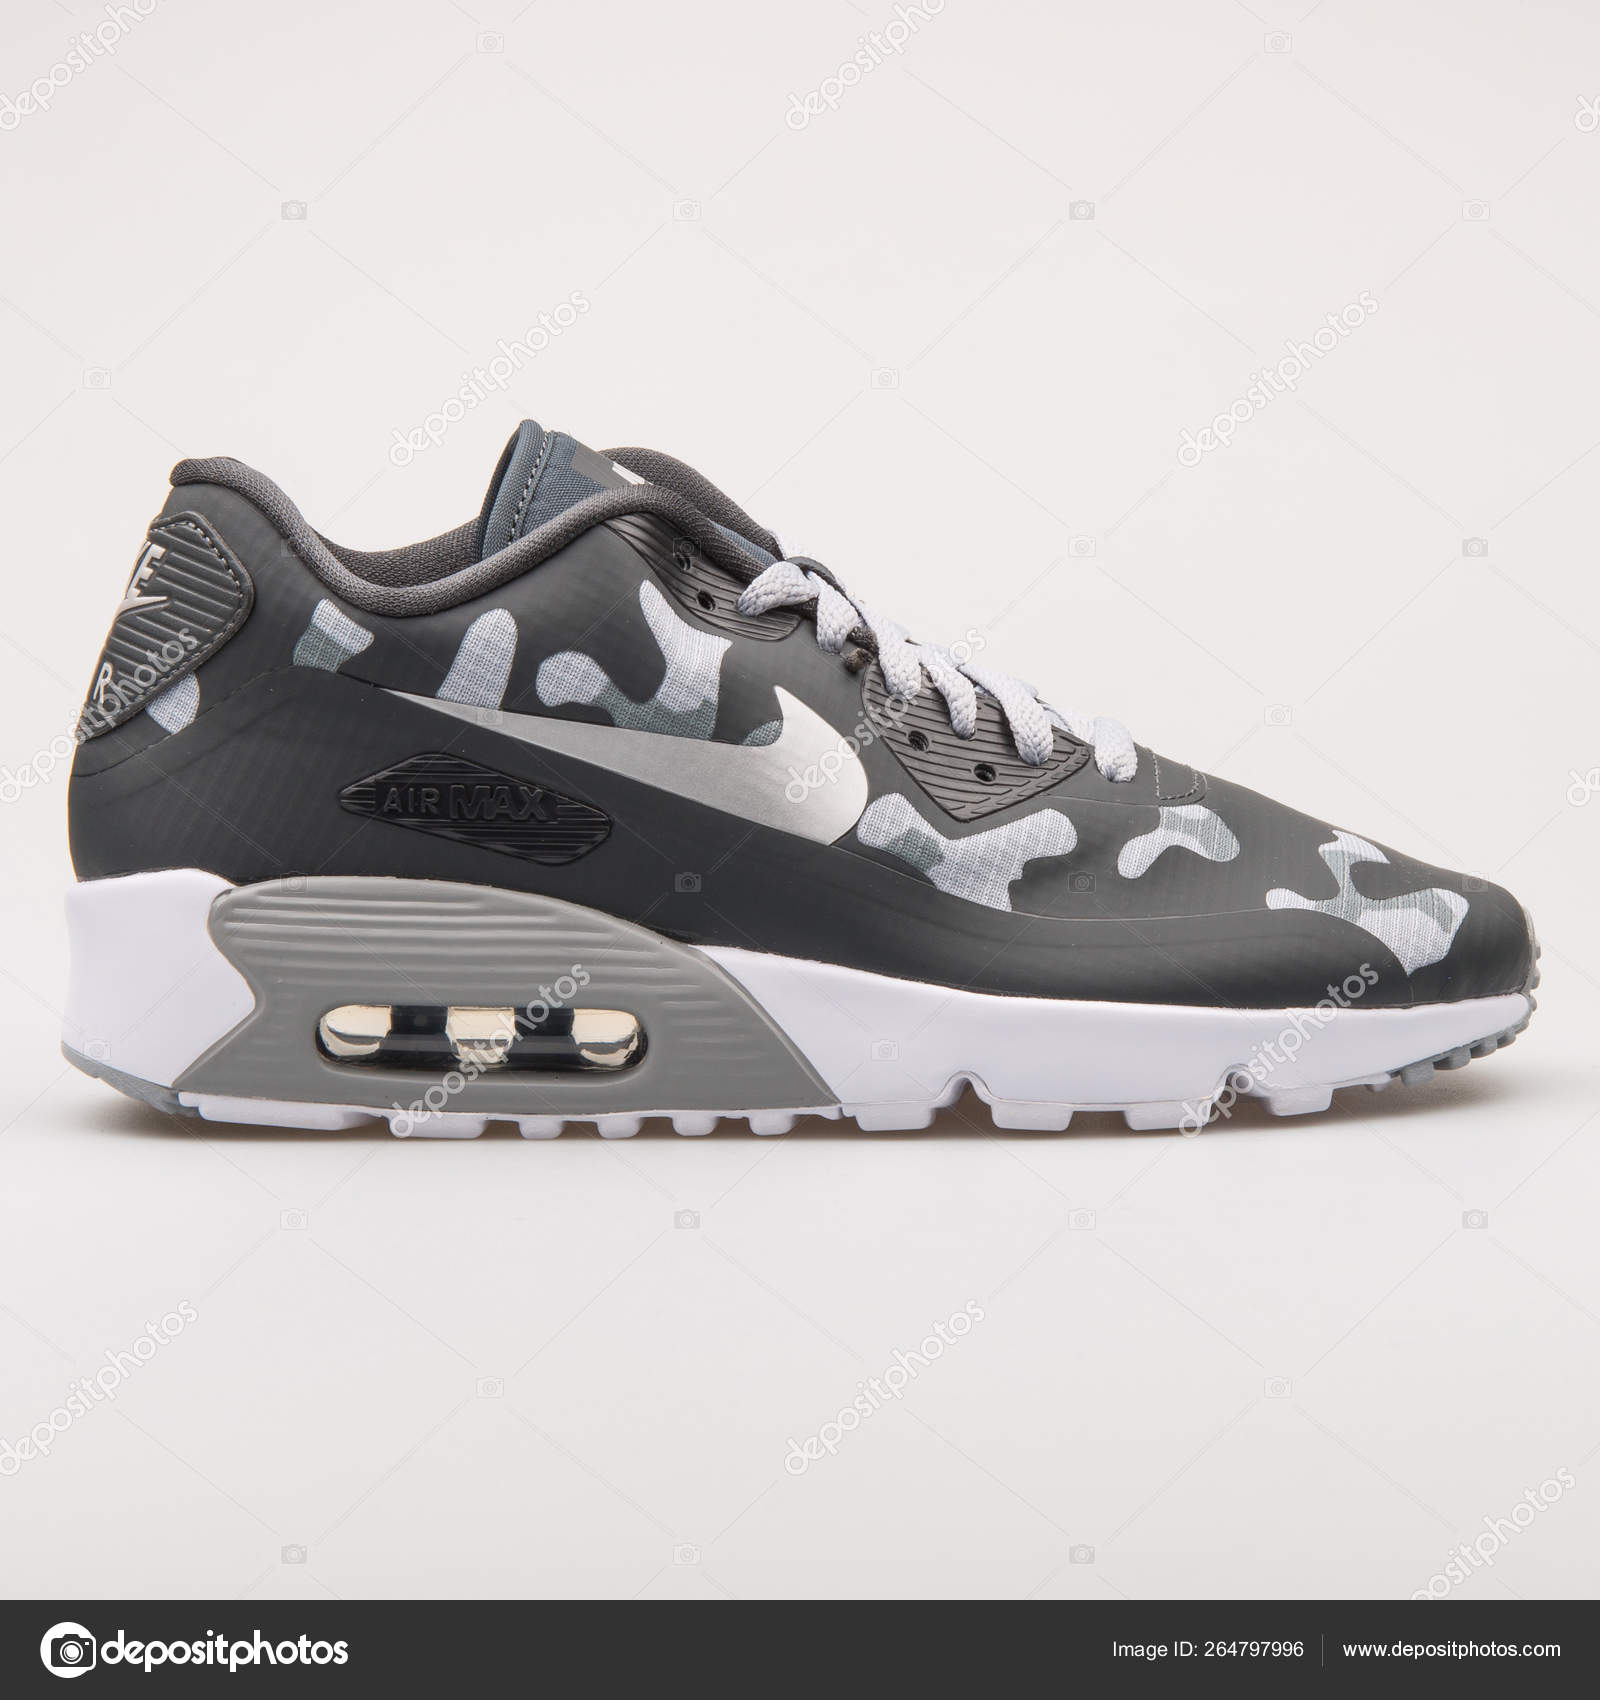 Nike Air Max 90 NS SE grey and black camo sneaker – Stock